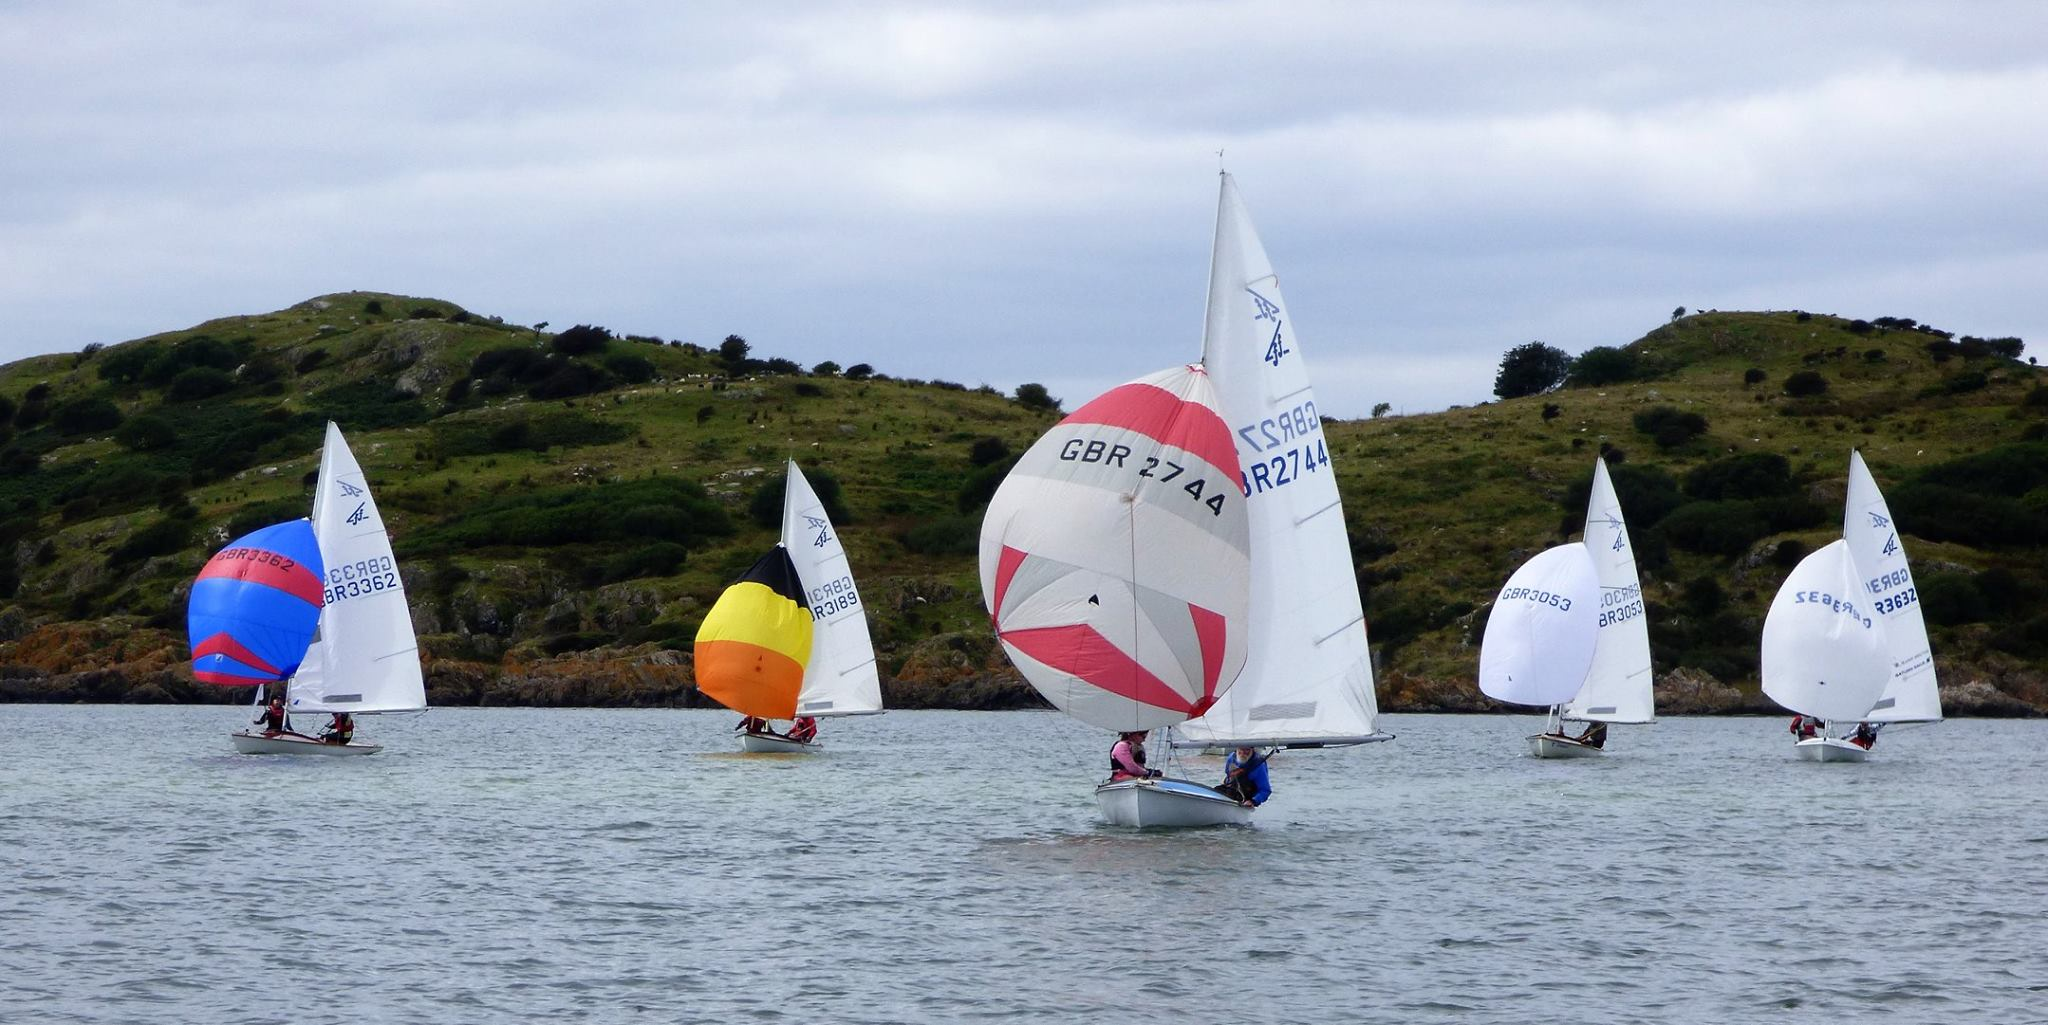 ff spinnakers